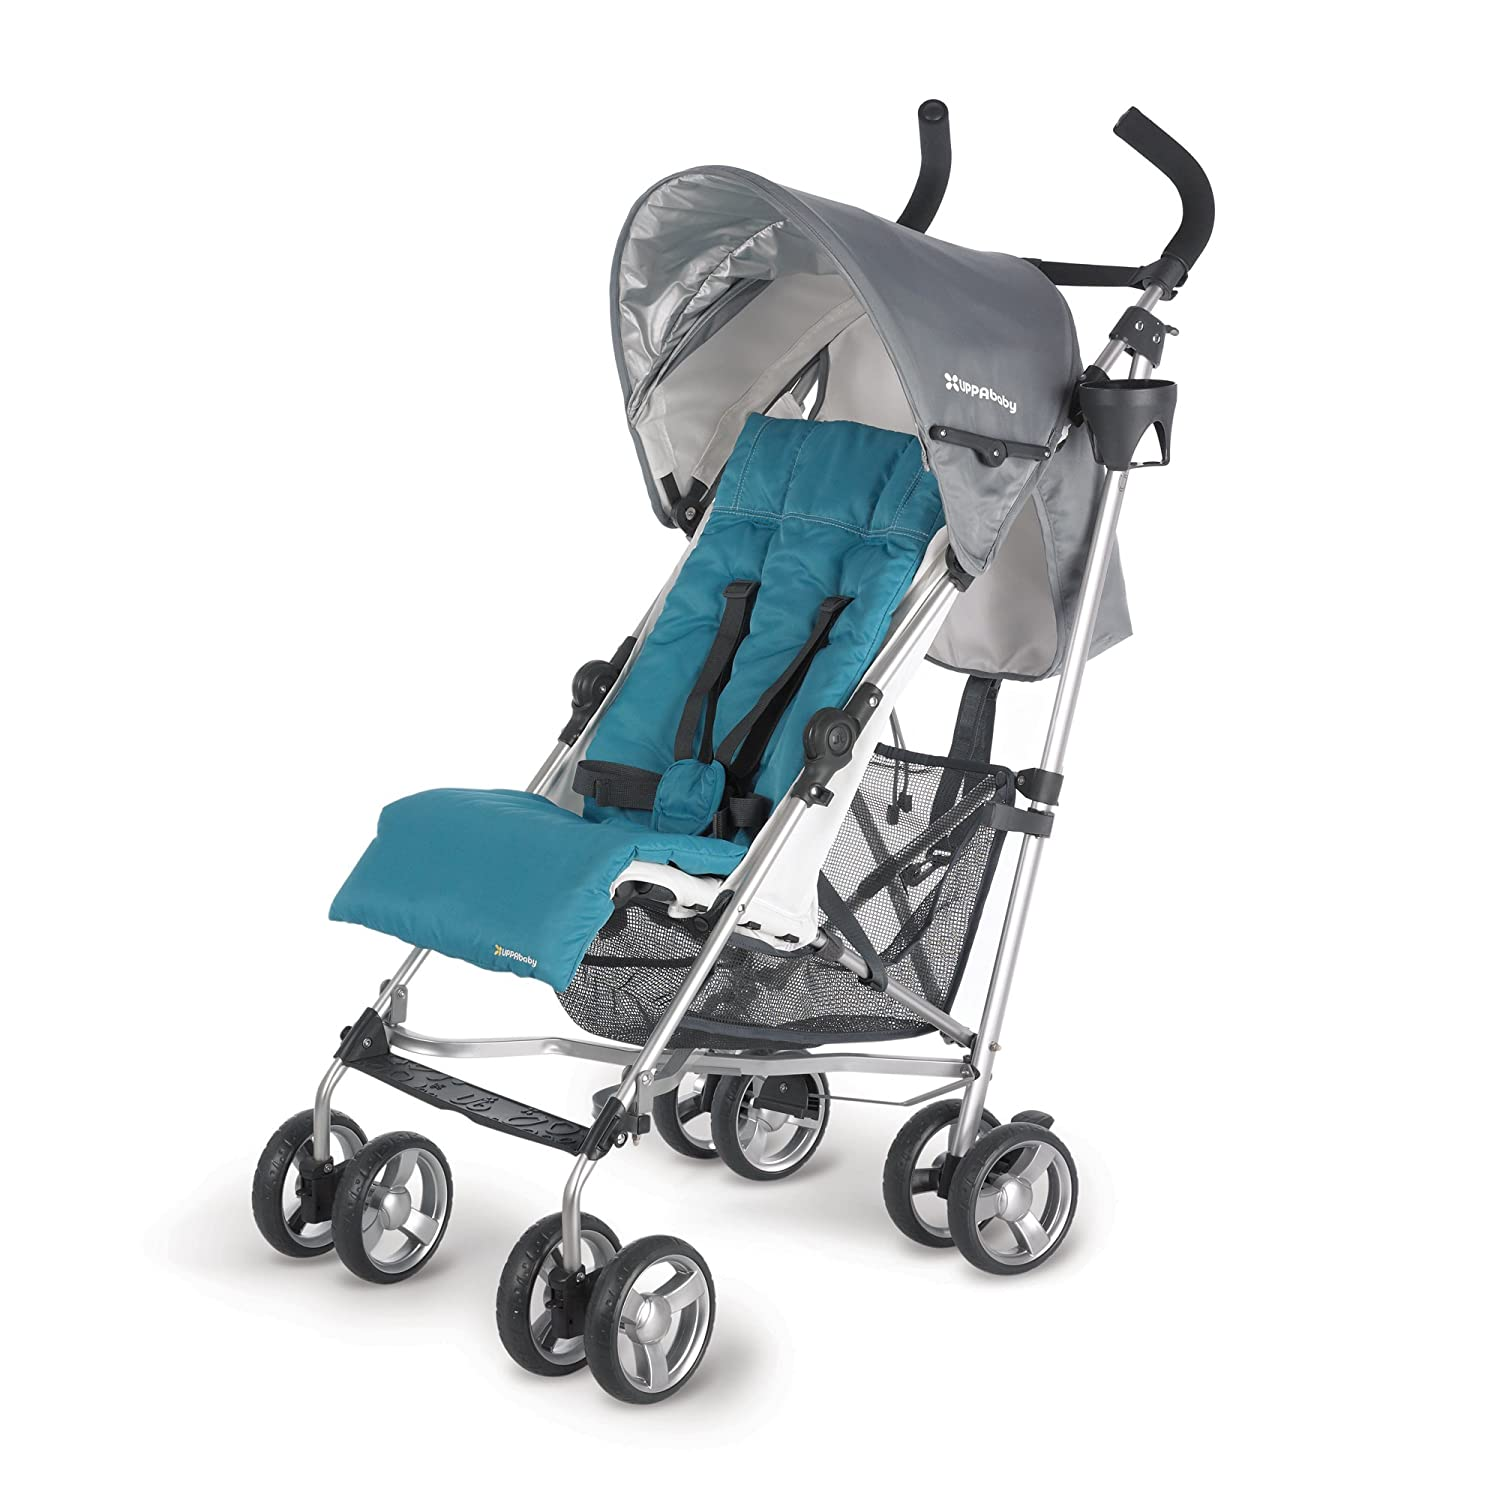 Amazon UPPAbaby G Luxe Stroller Sebby Teal Discontinued by Manufacturer Standard Baby Strollers Baby